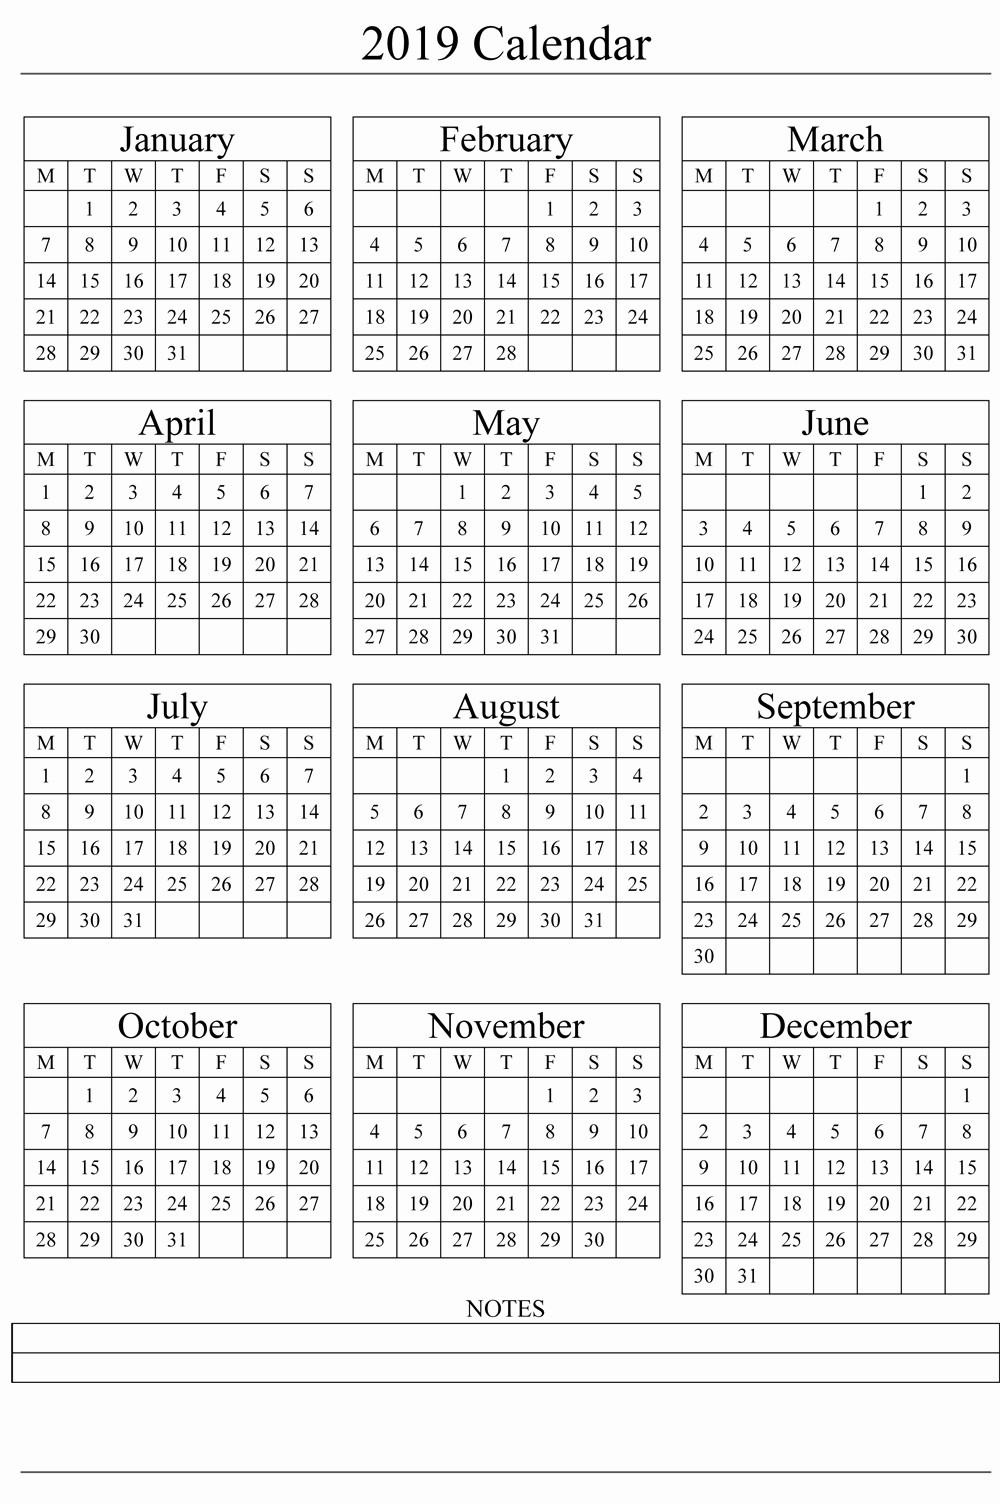 Free Monthly Calendar Template 2019 Lovely 2019 Printable Calendar Templates [free]